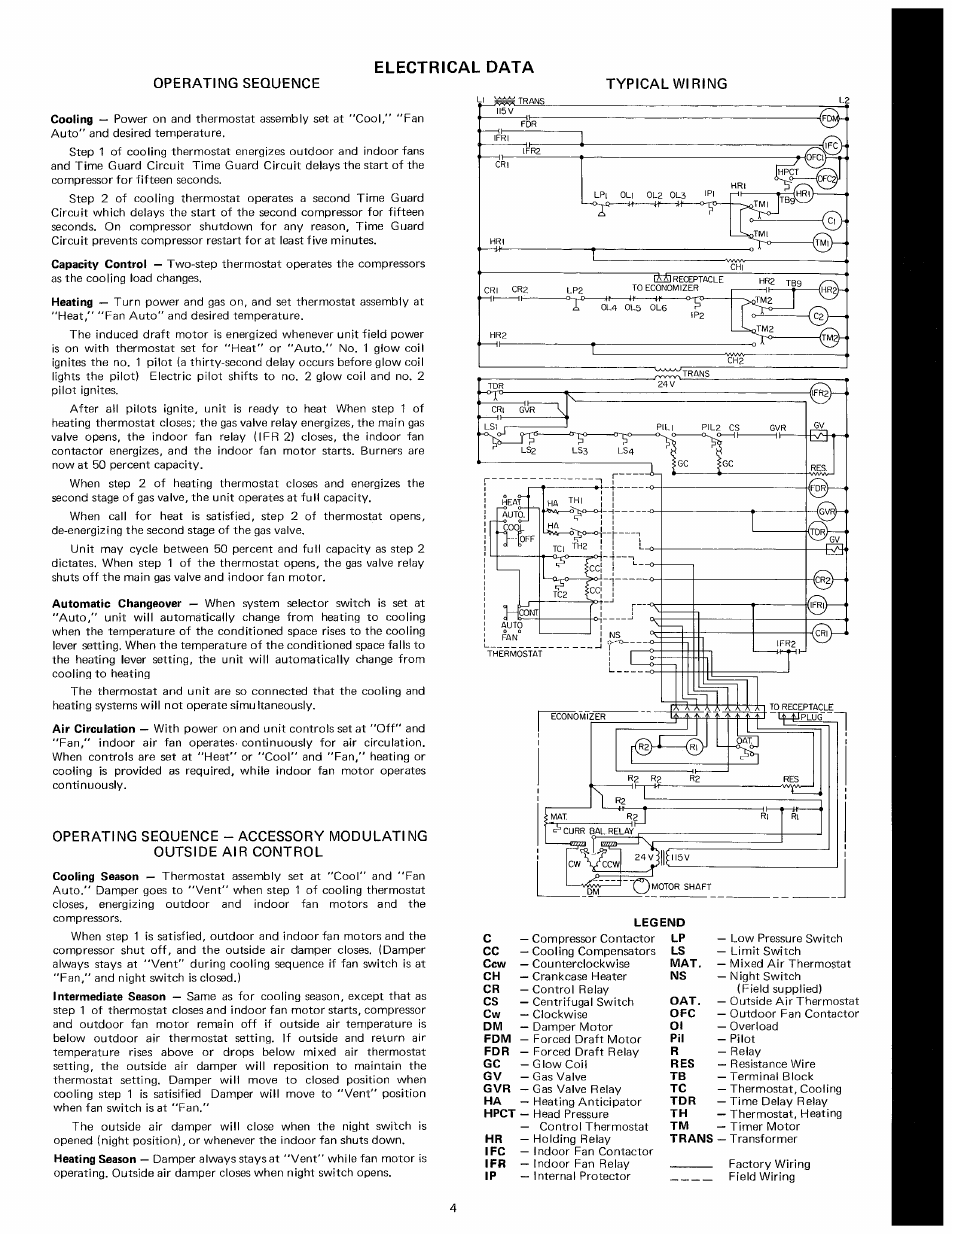 Trane Economizer Wiring Diagram Crankcase Heater Auto Diagrams